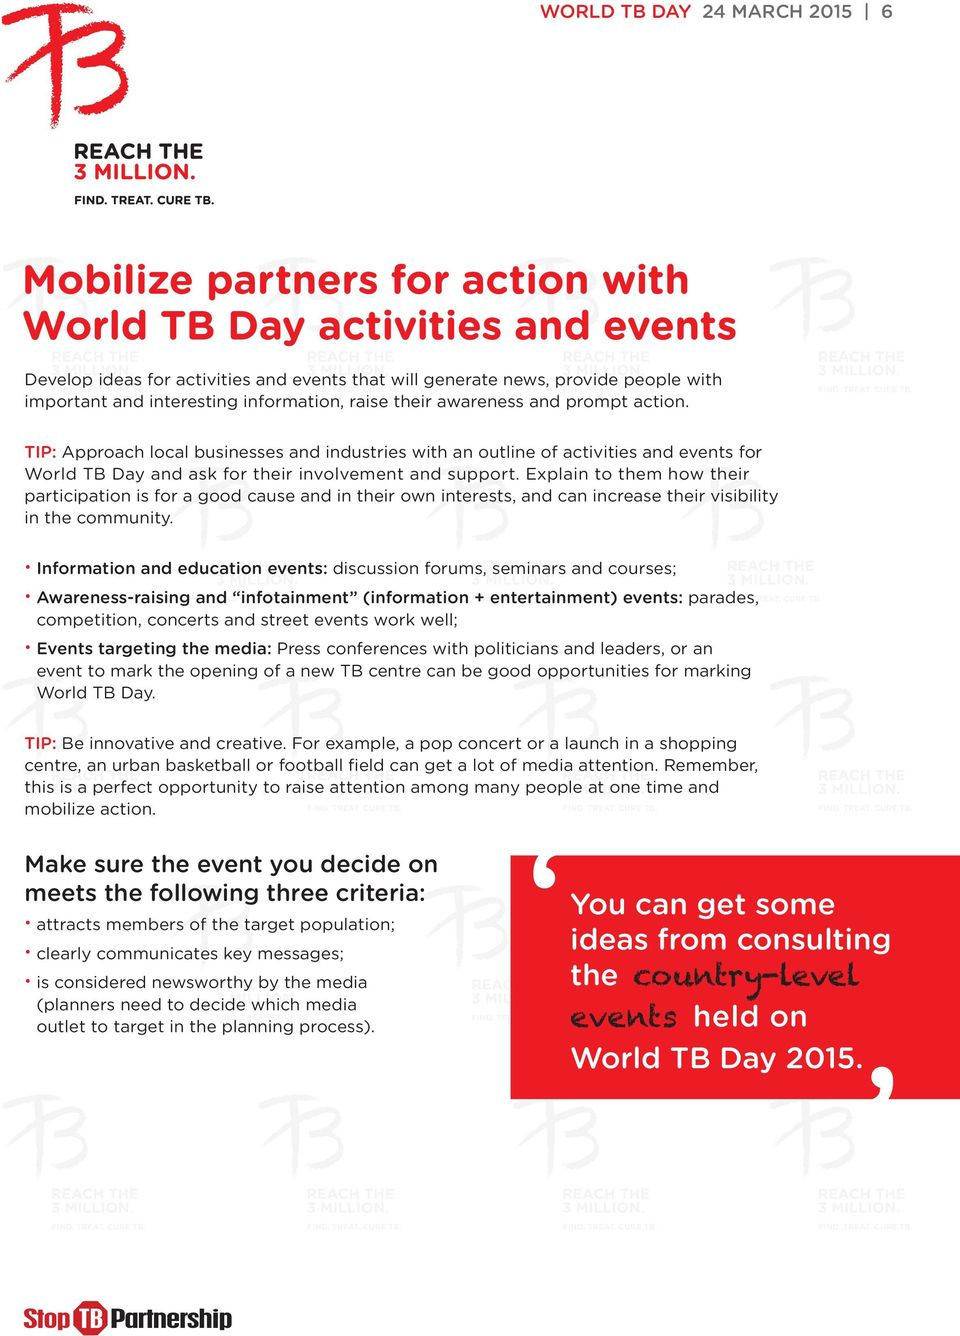 TIP: Approach local businesses and industries with an outline of activities and events for World TB Day and ask for their involvement and support.